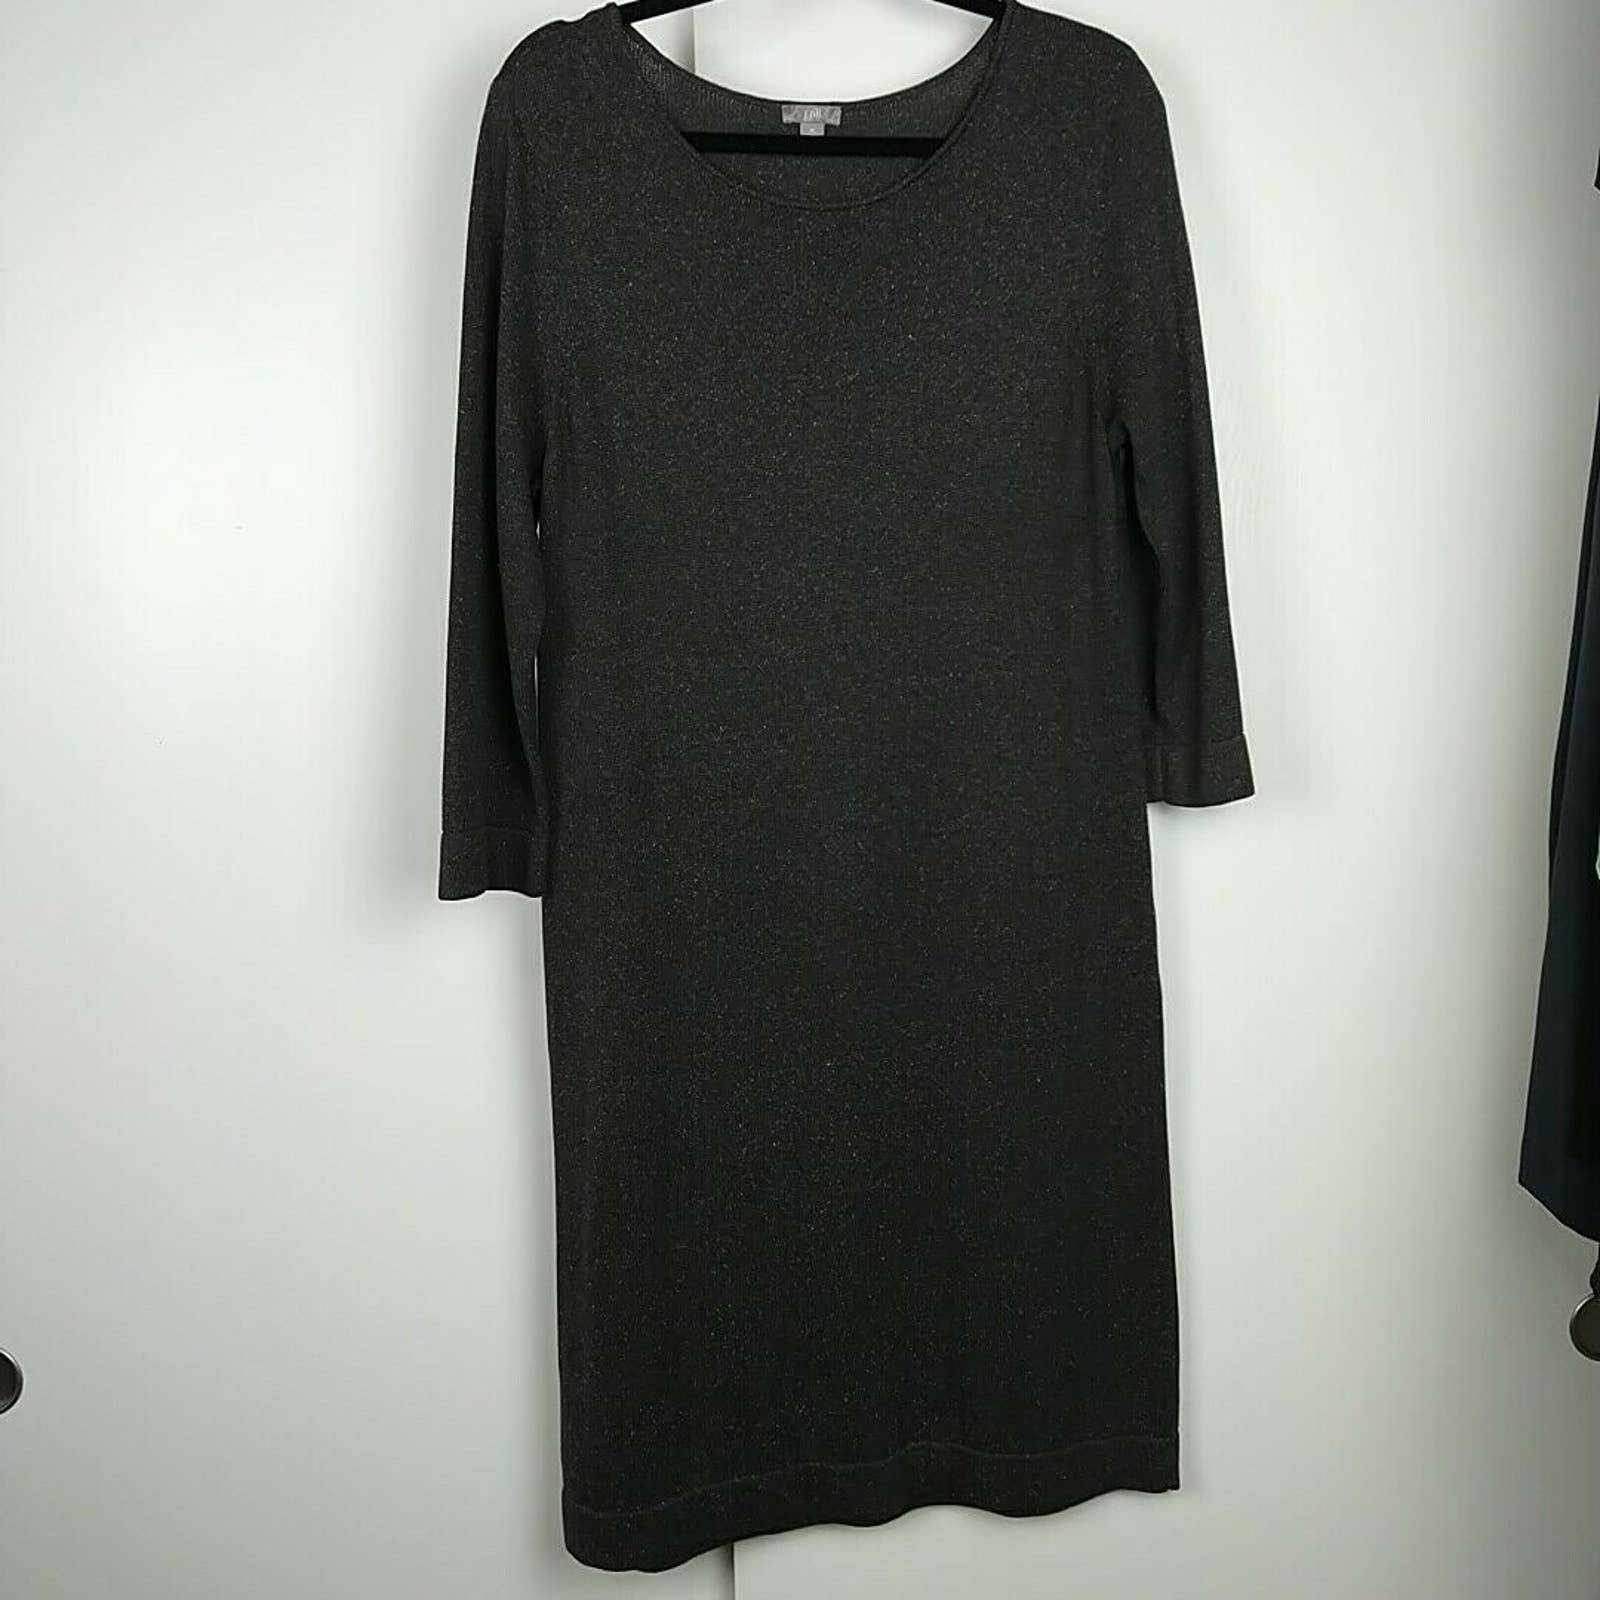 J Jill Brown Long Sleeve Sweater Dress M